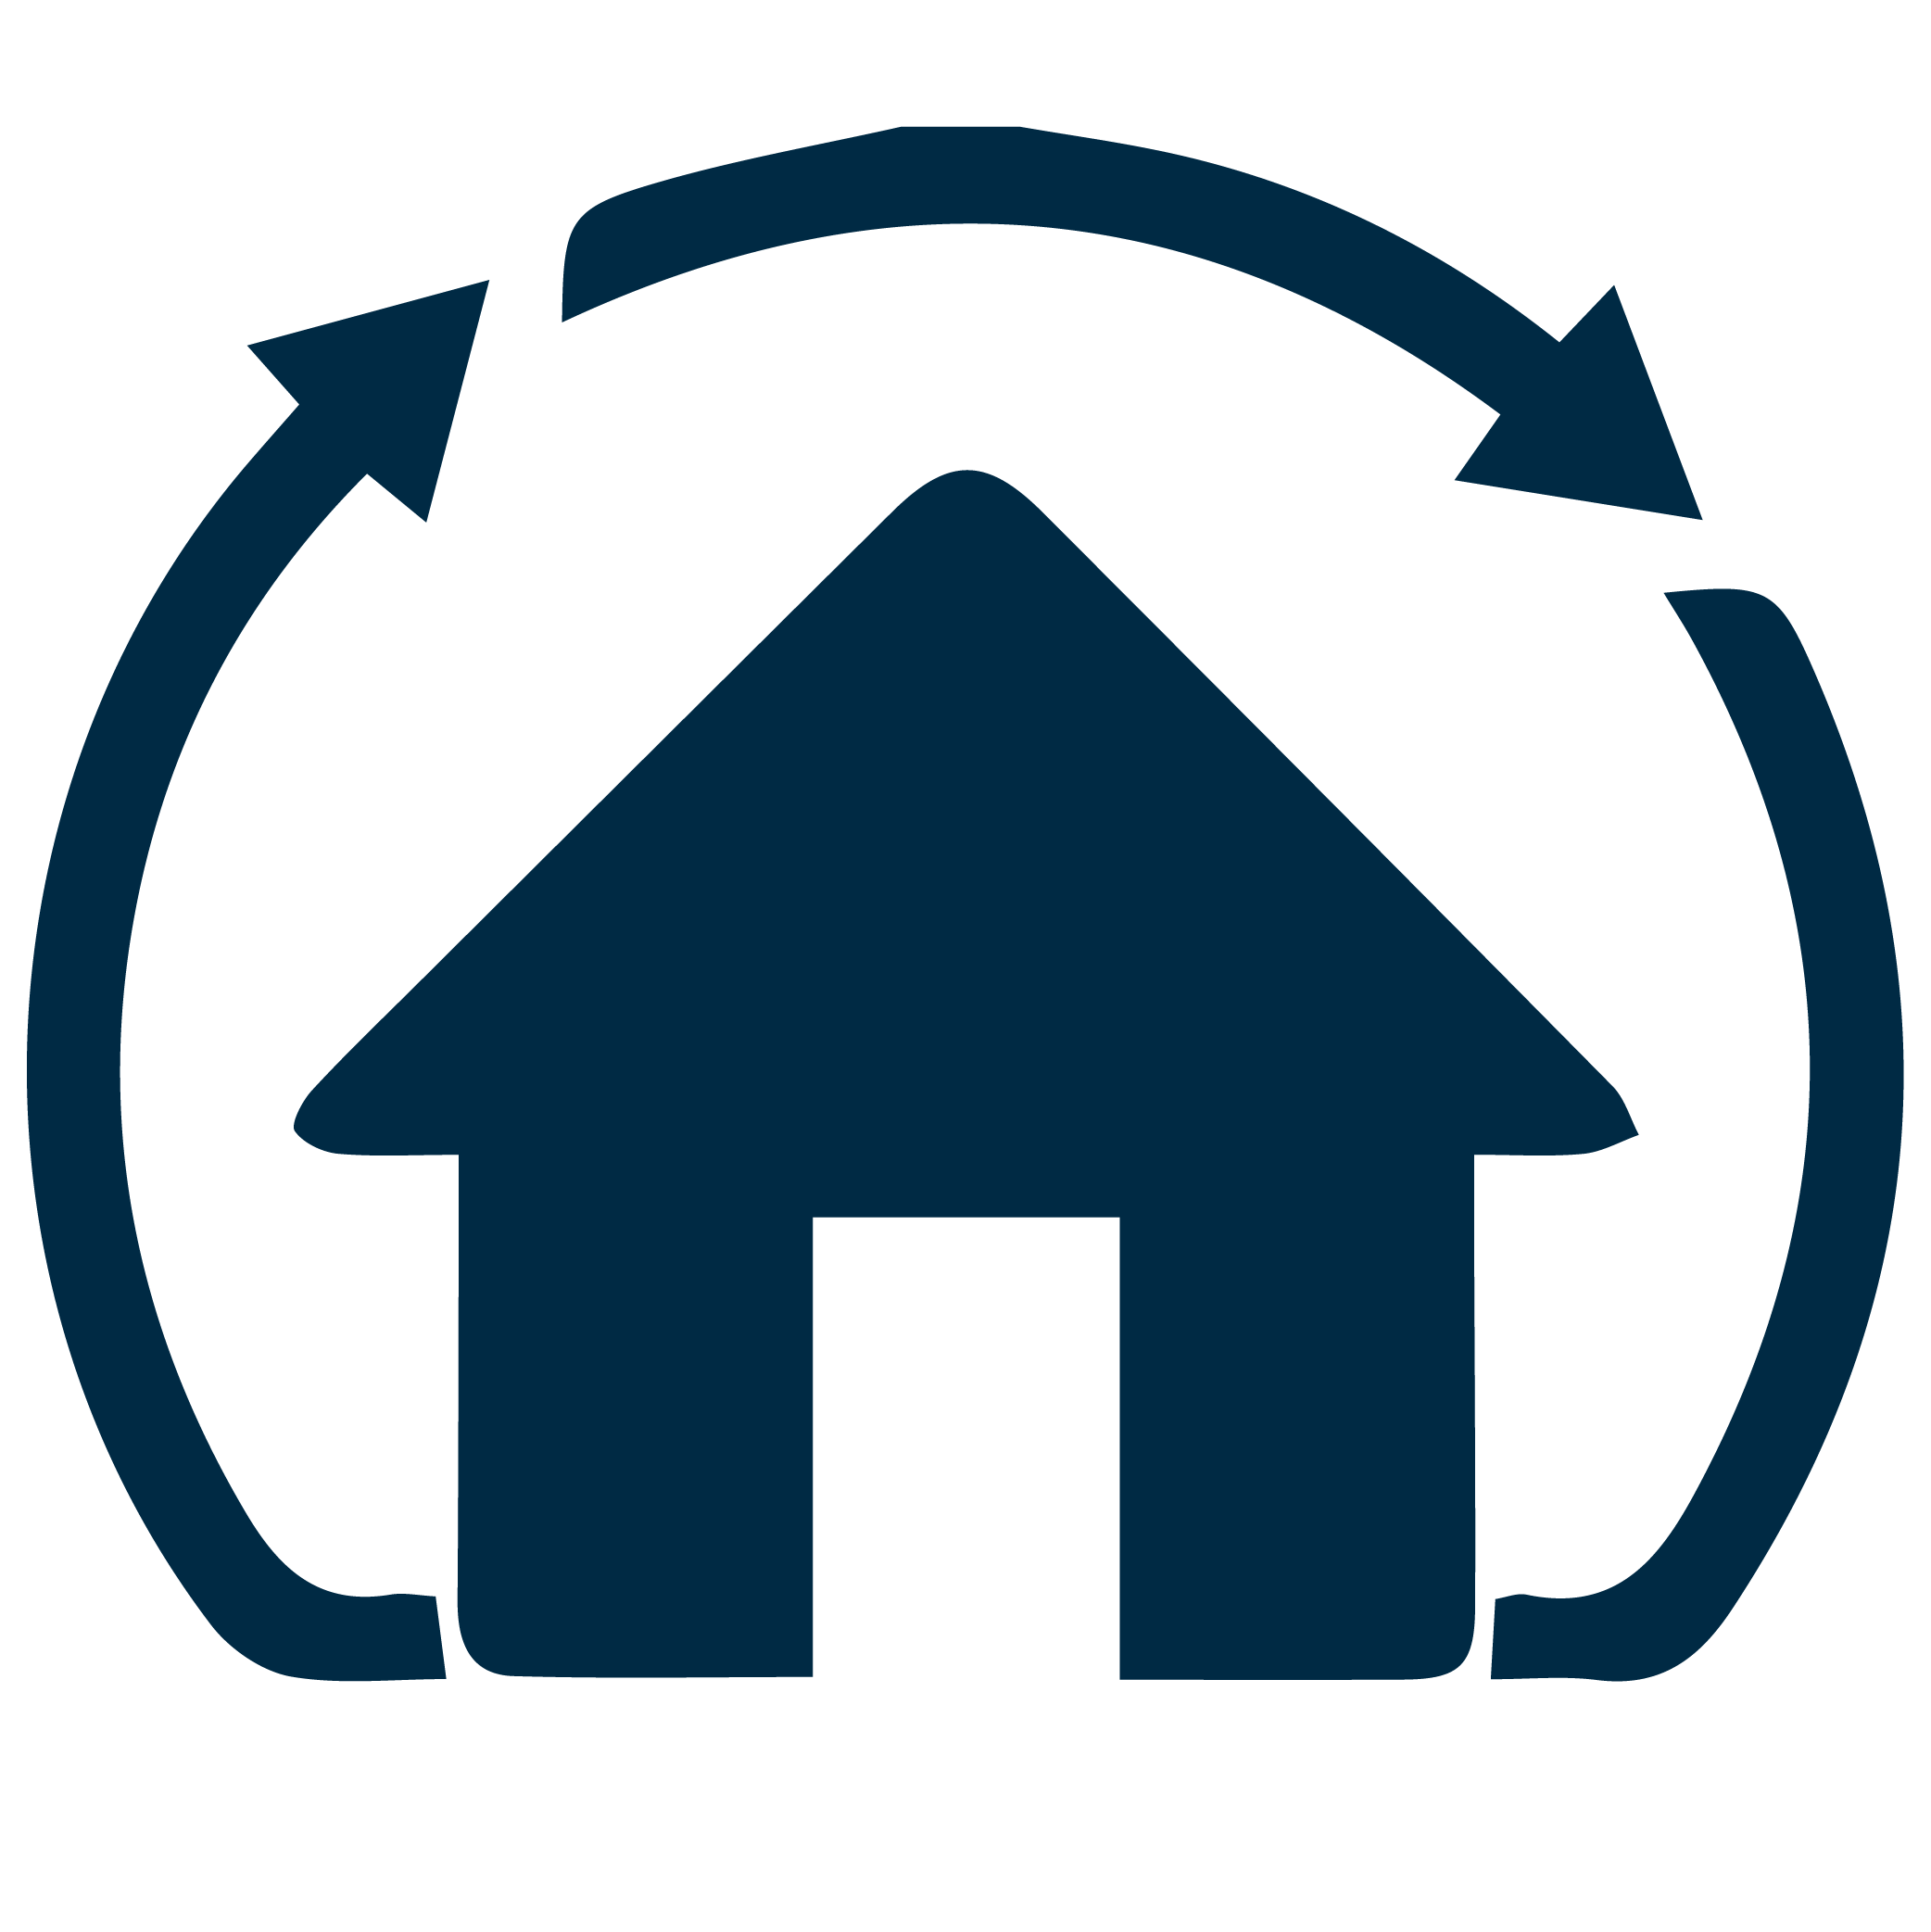 renovation icon for home page amaris group-01